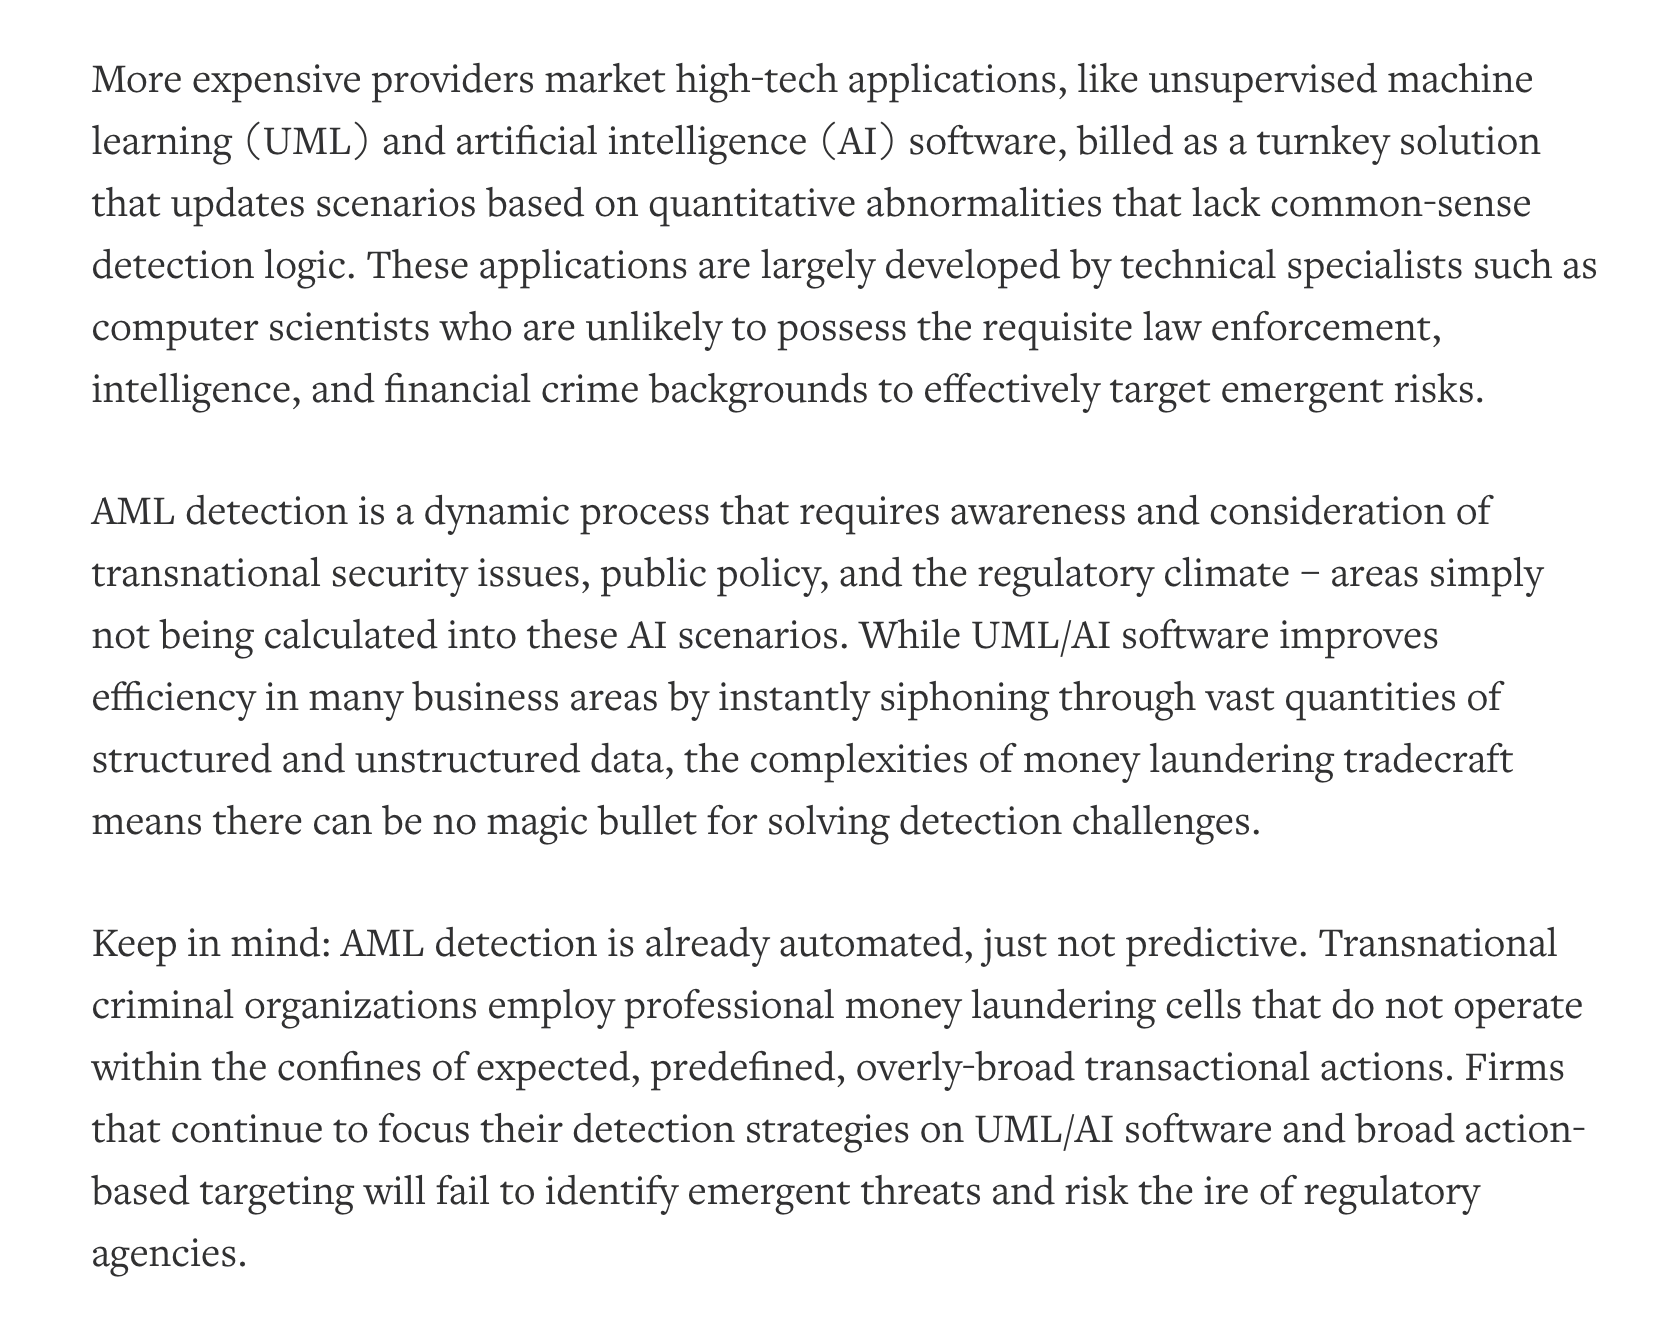 uml-ai-problems-in-aml-reuters.png